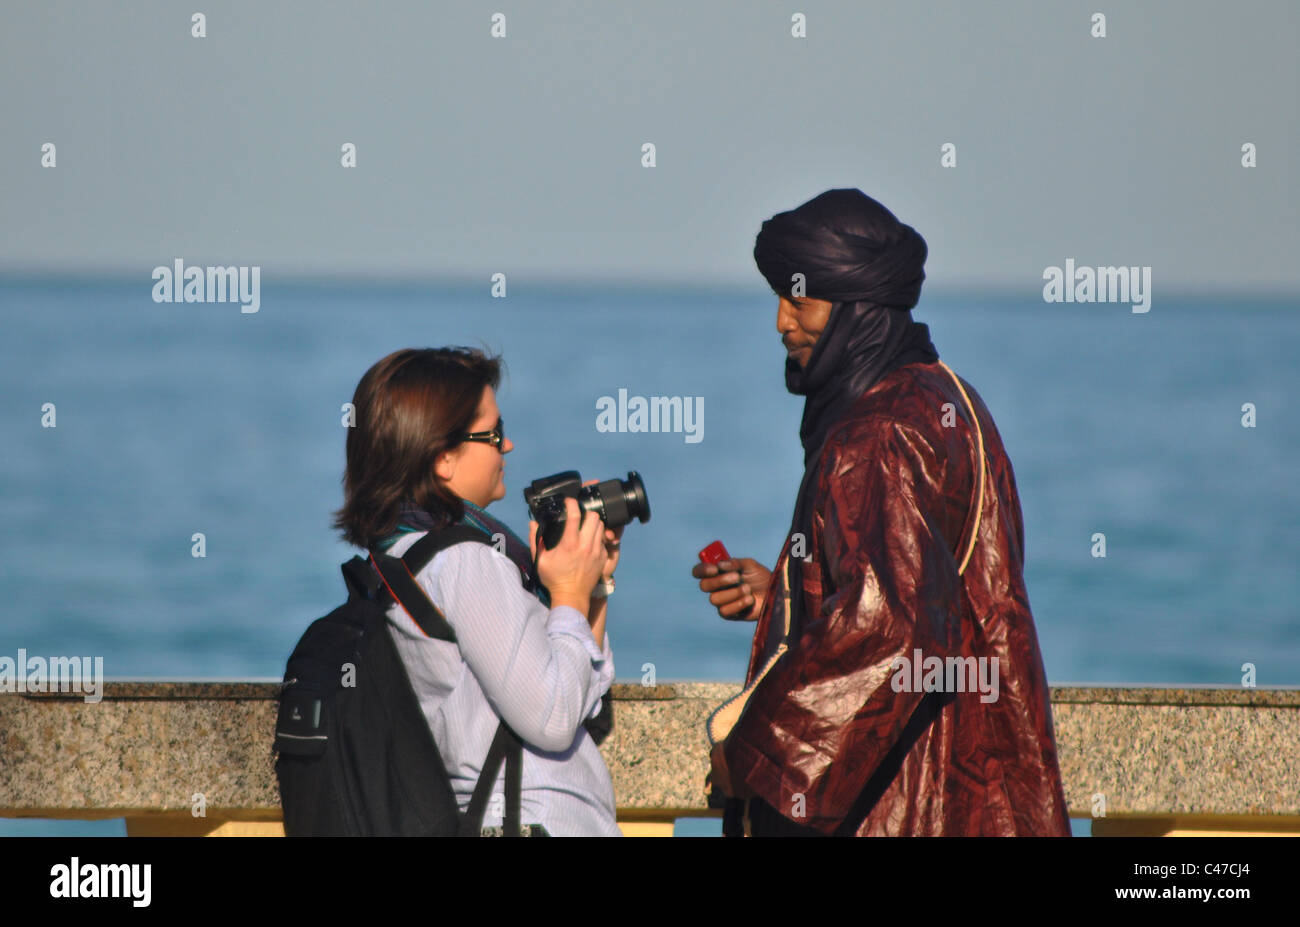 Woman taking a photo of a Tunisian man in Sousse, Tunisia - Stock Image